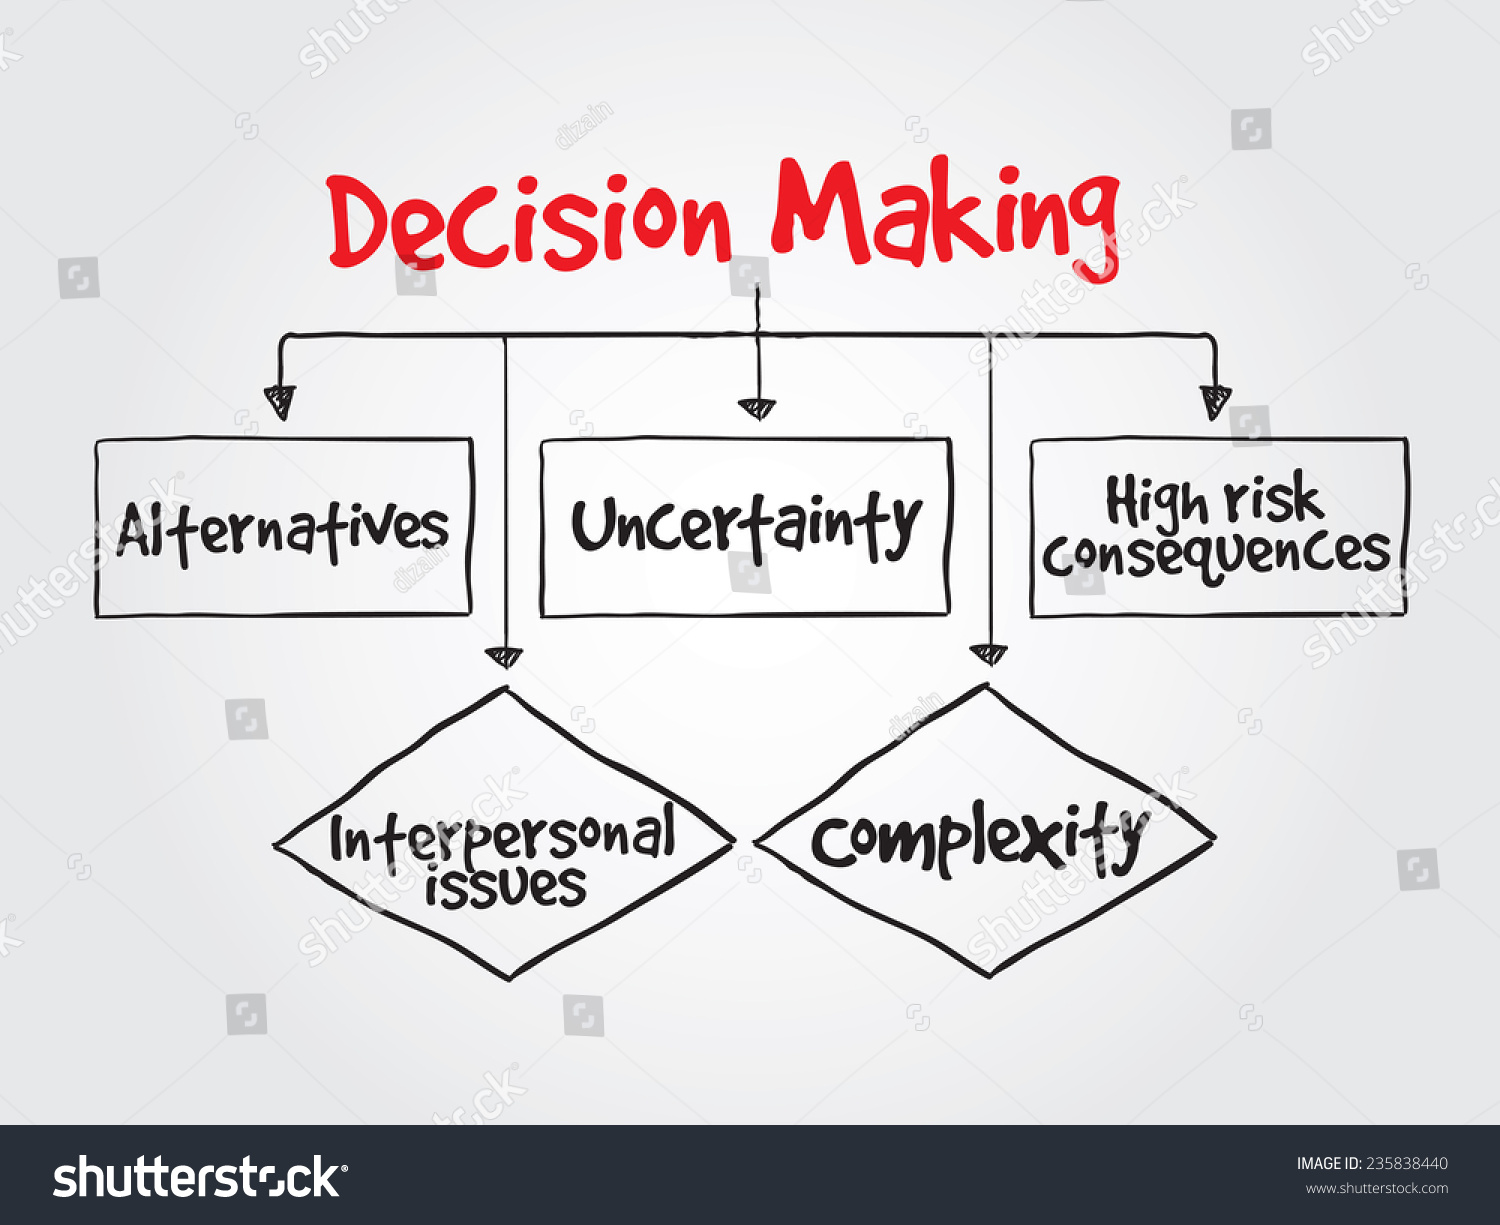 How flow chart for making coffee hand drawn decision making flow hand drawn decision making flow chart stock vector 235838440 hand drawn decision making flow chart for nvjuhfo Images